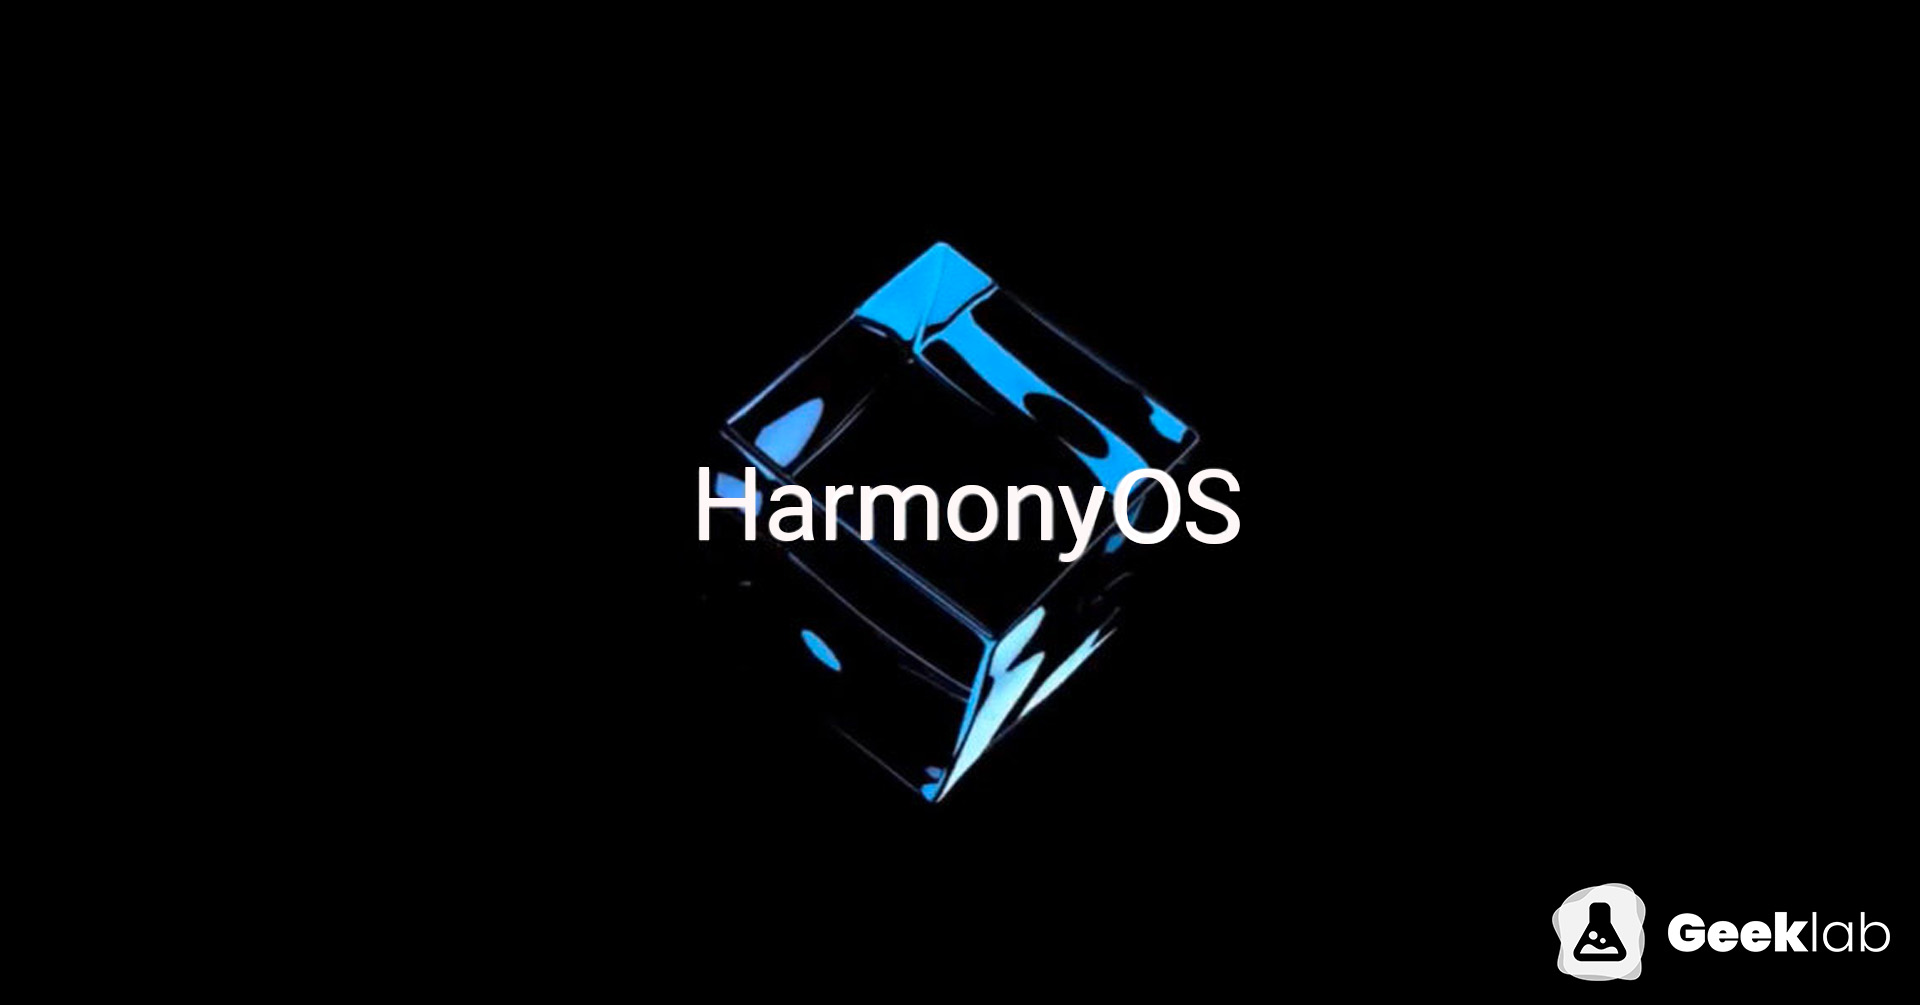 Mobile Operating Systems - Harmony OS 2.0 influencing a new era?